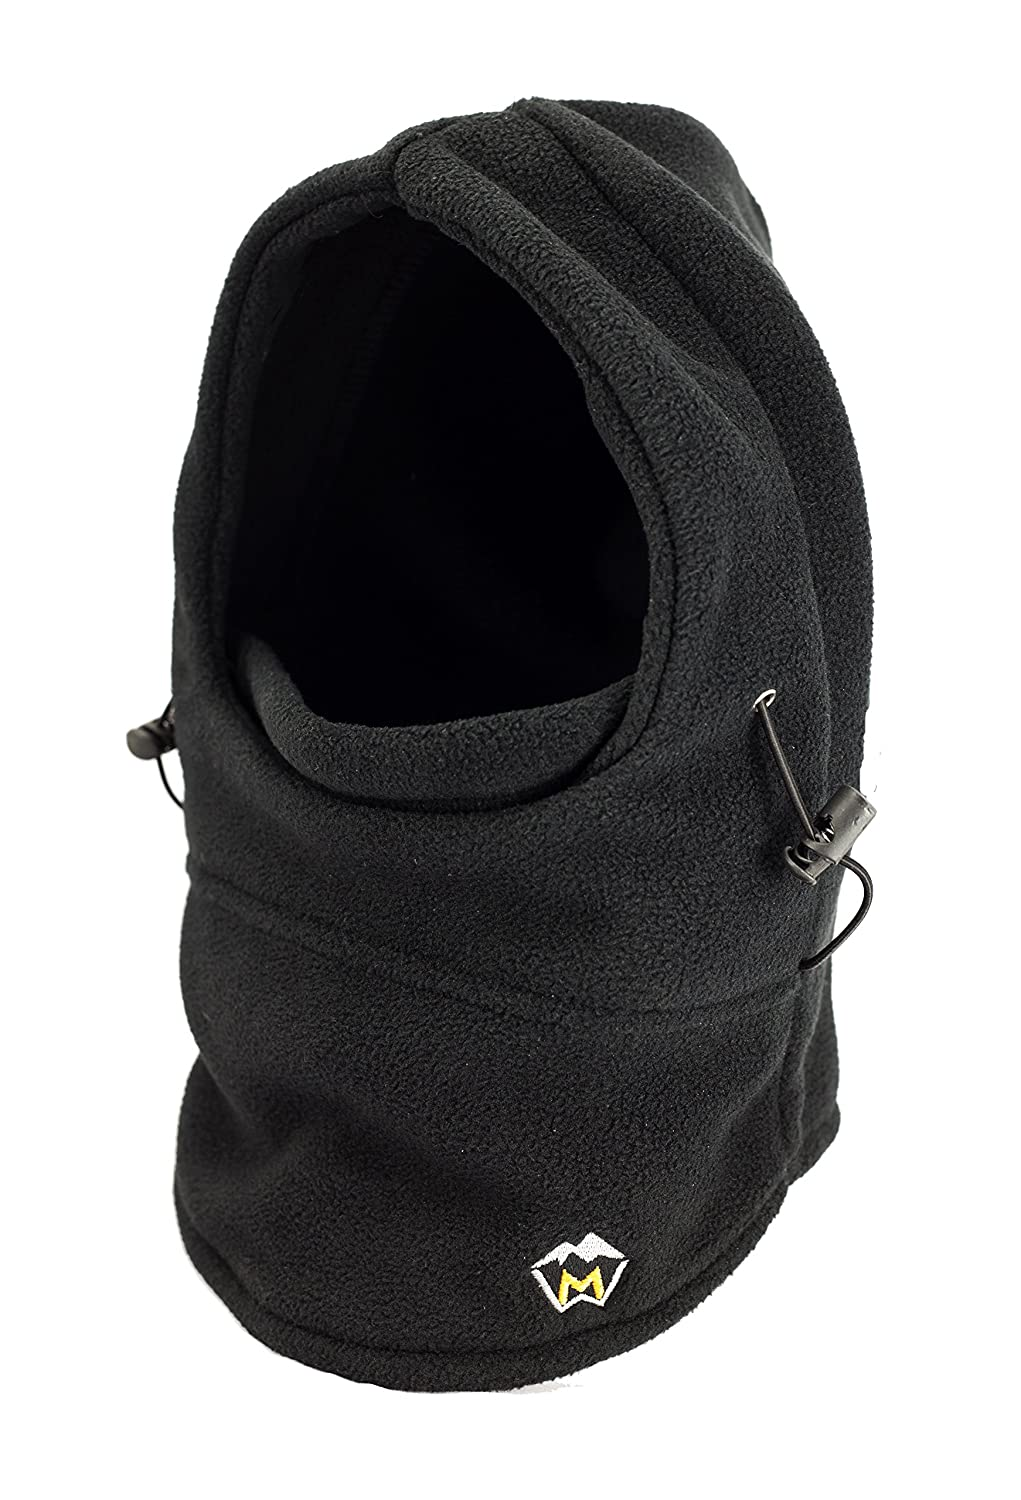 MaxWarmth Weatherbeating Balaclava, unisex and unisize, with extra long collar to ensure warm head AND Neck, all in one Snood, Neckwarmer, and Ski Mask in Black or Charcoal made from super warm fleece Pureur BALAVA 001